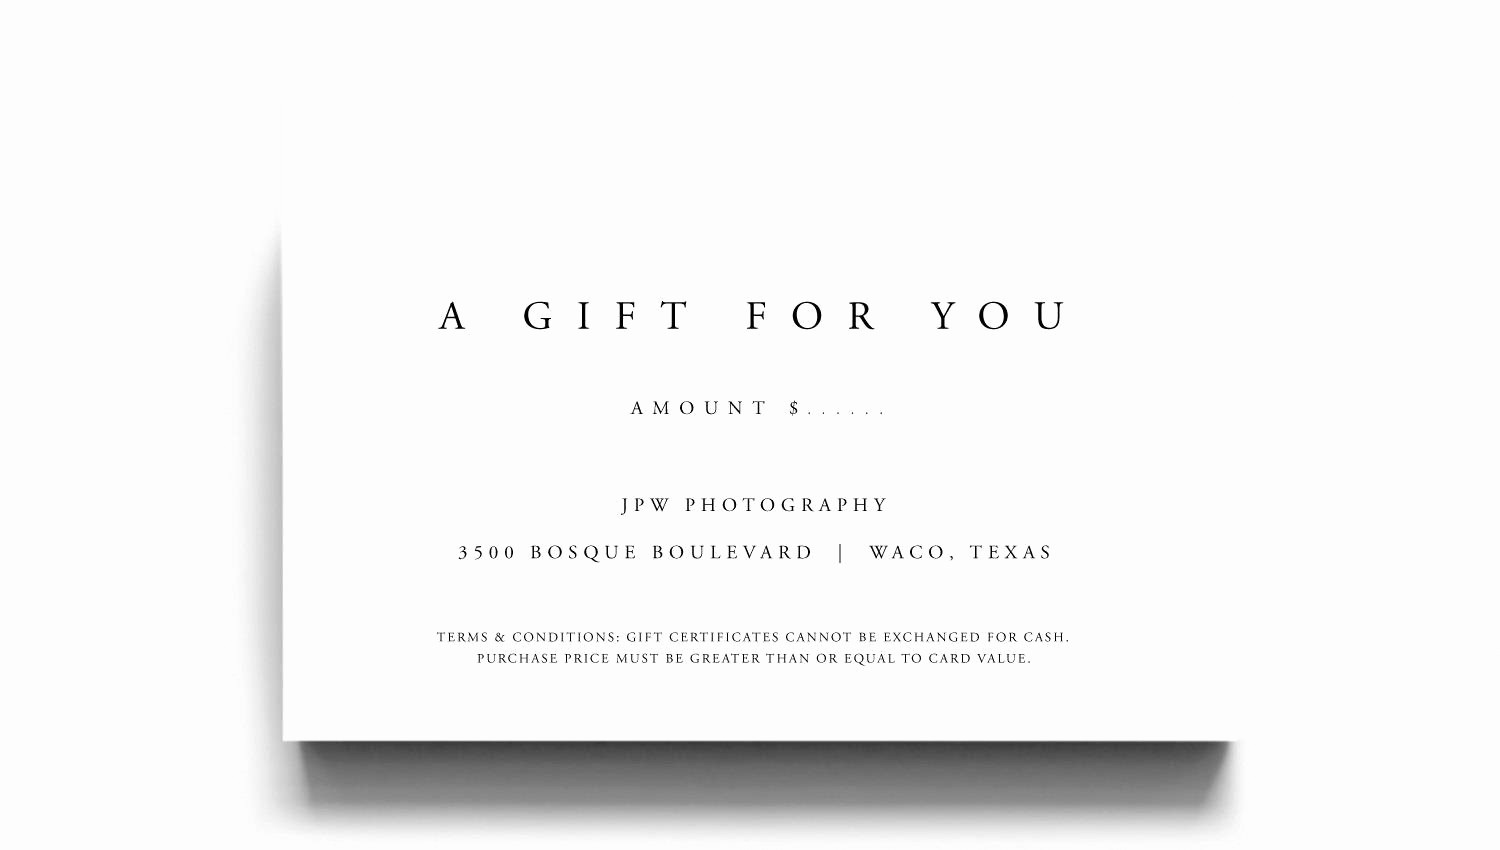 A Gift for You Template Lovely Gift Certificate Template A Gift for You Gift Voucher